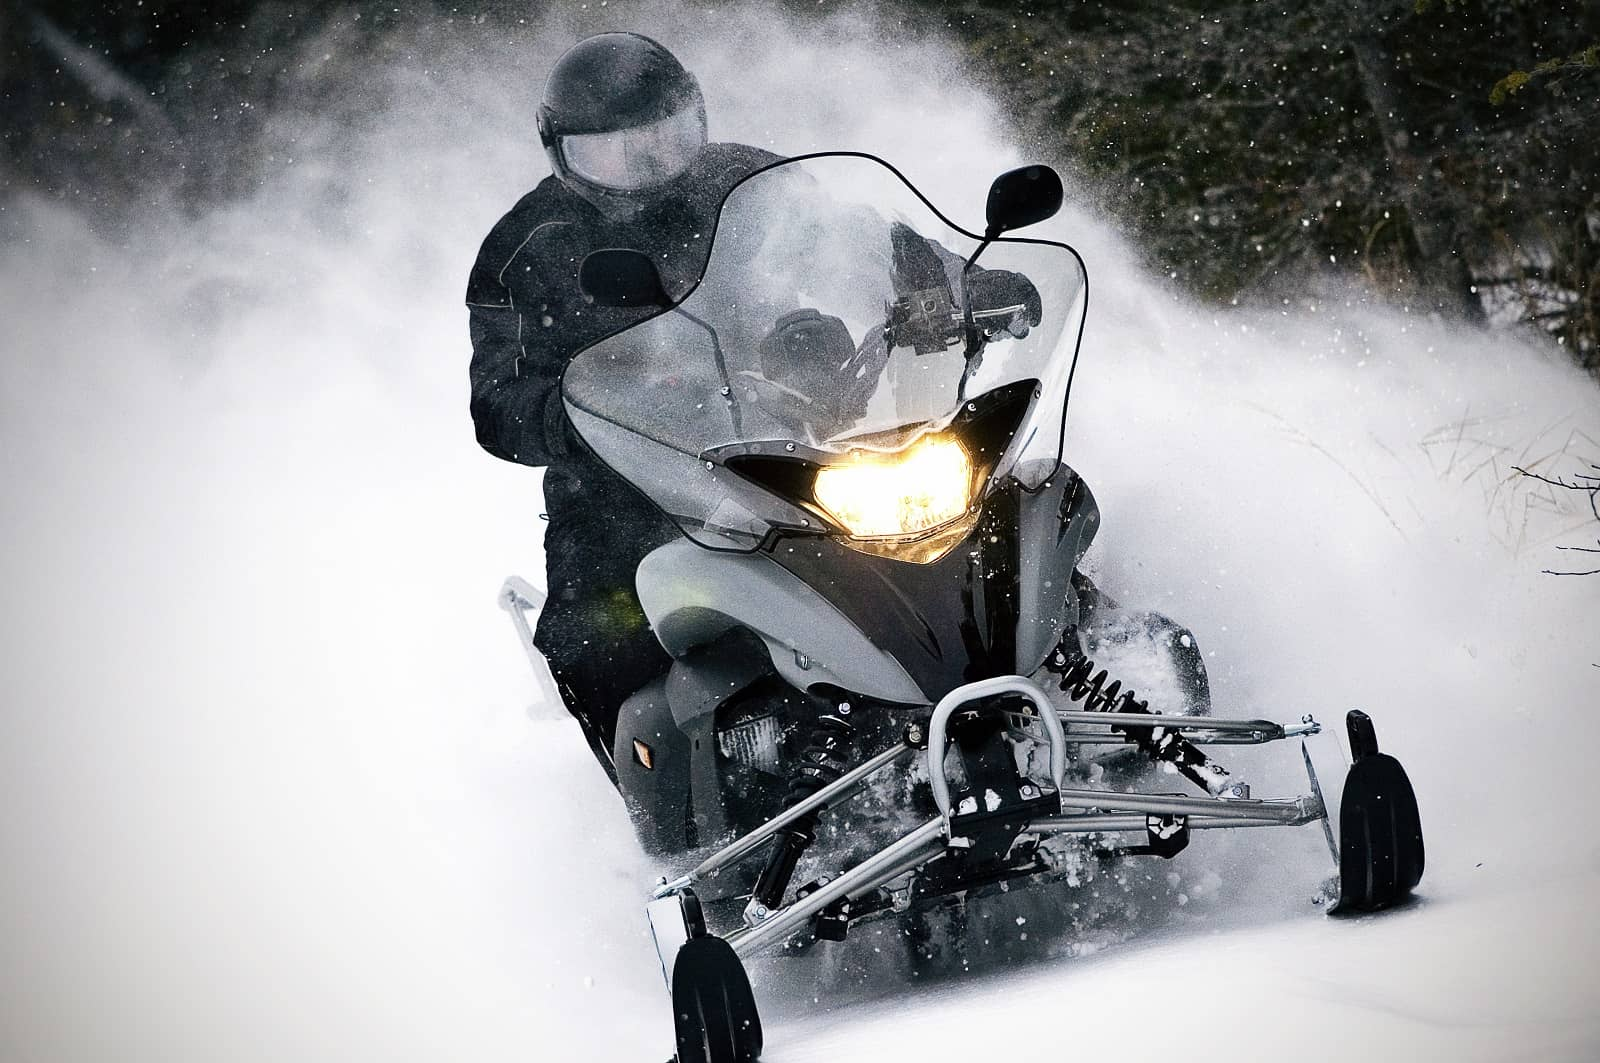 snowmobile kicking up snow